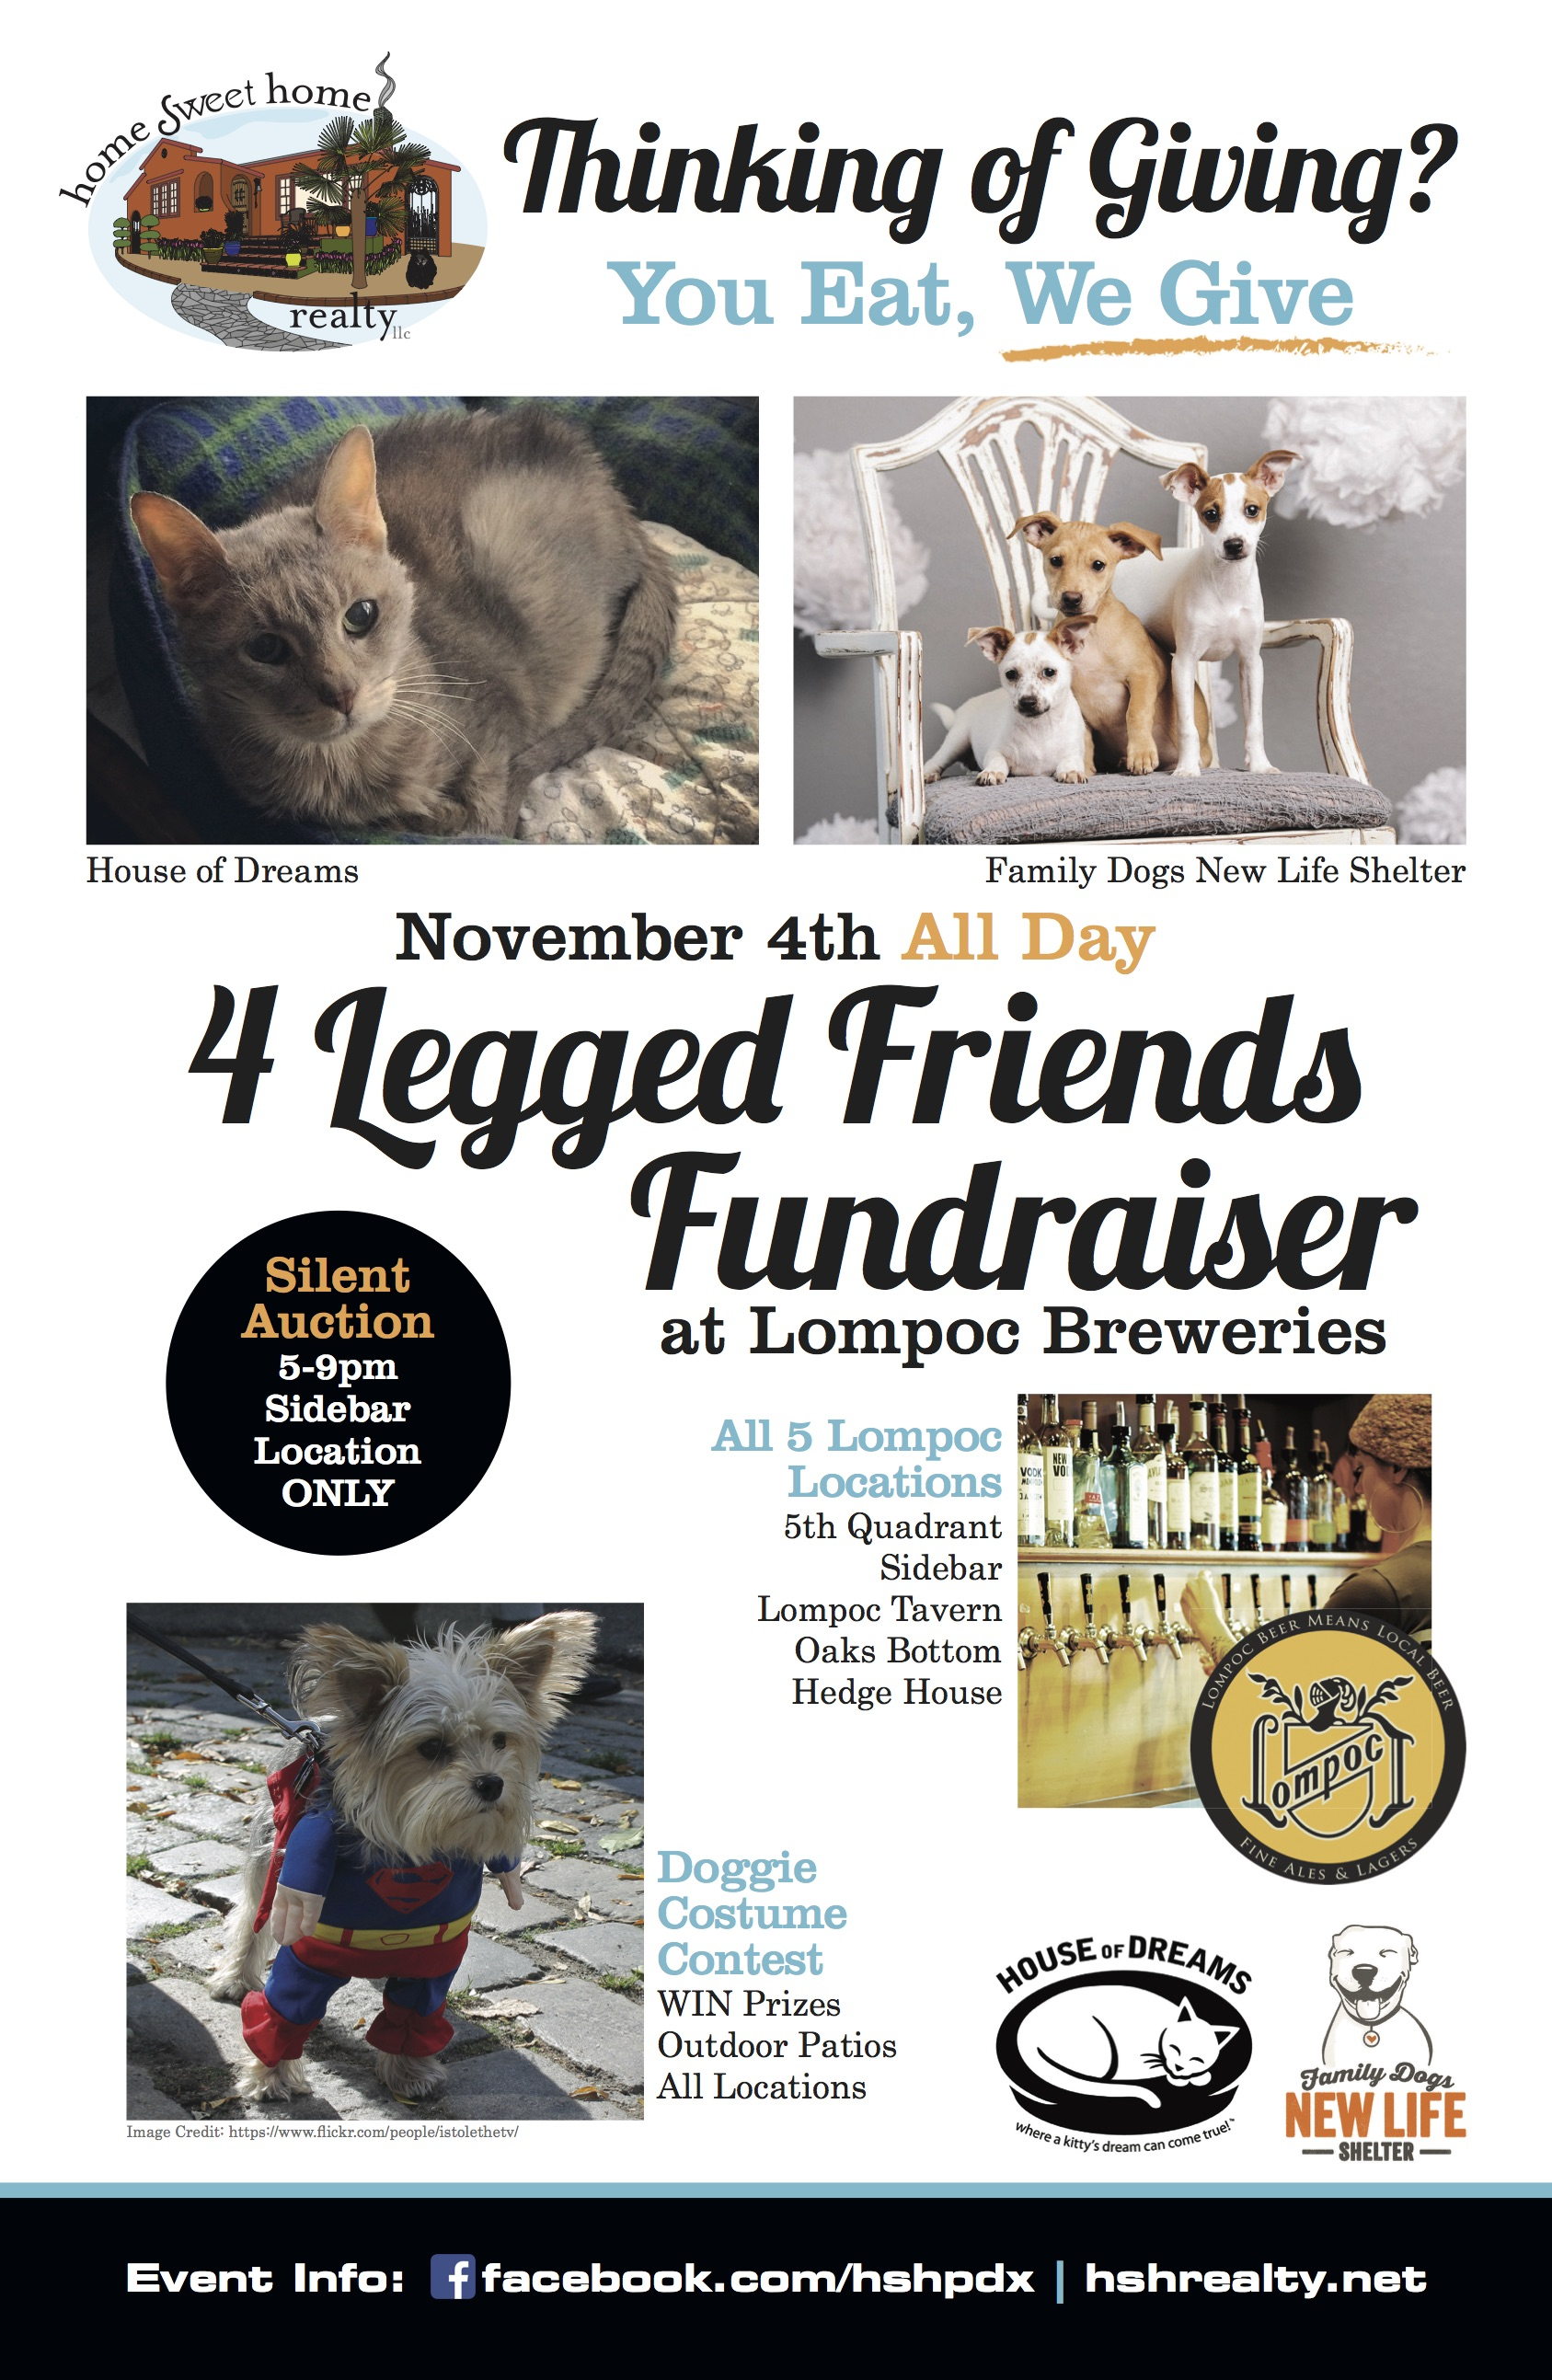 You Eat, We Give at the 4 - Legged Friends Fundraiser. Please join Home Sweet Home Realty and Lompoc Brewing on November 4th